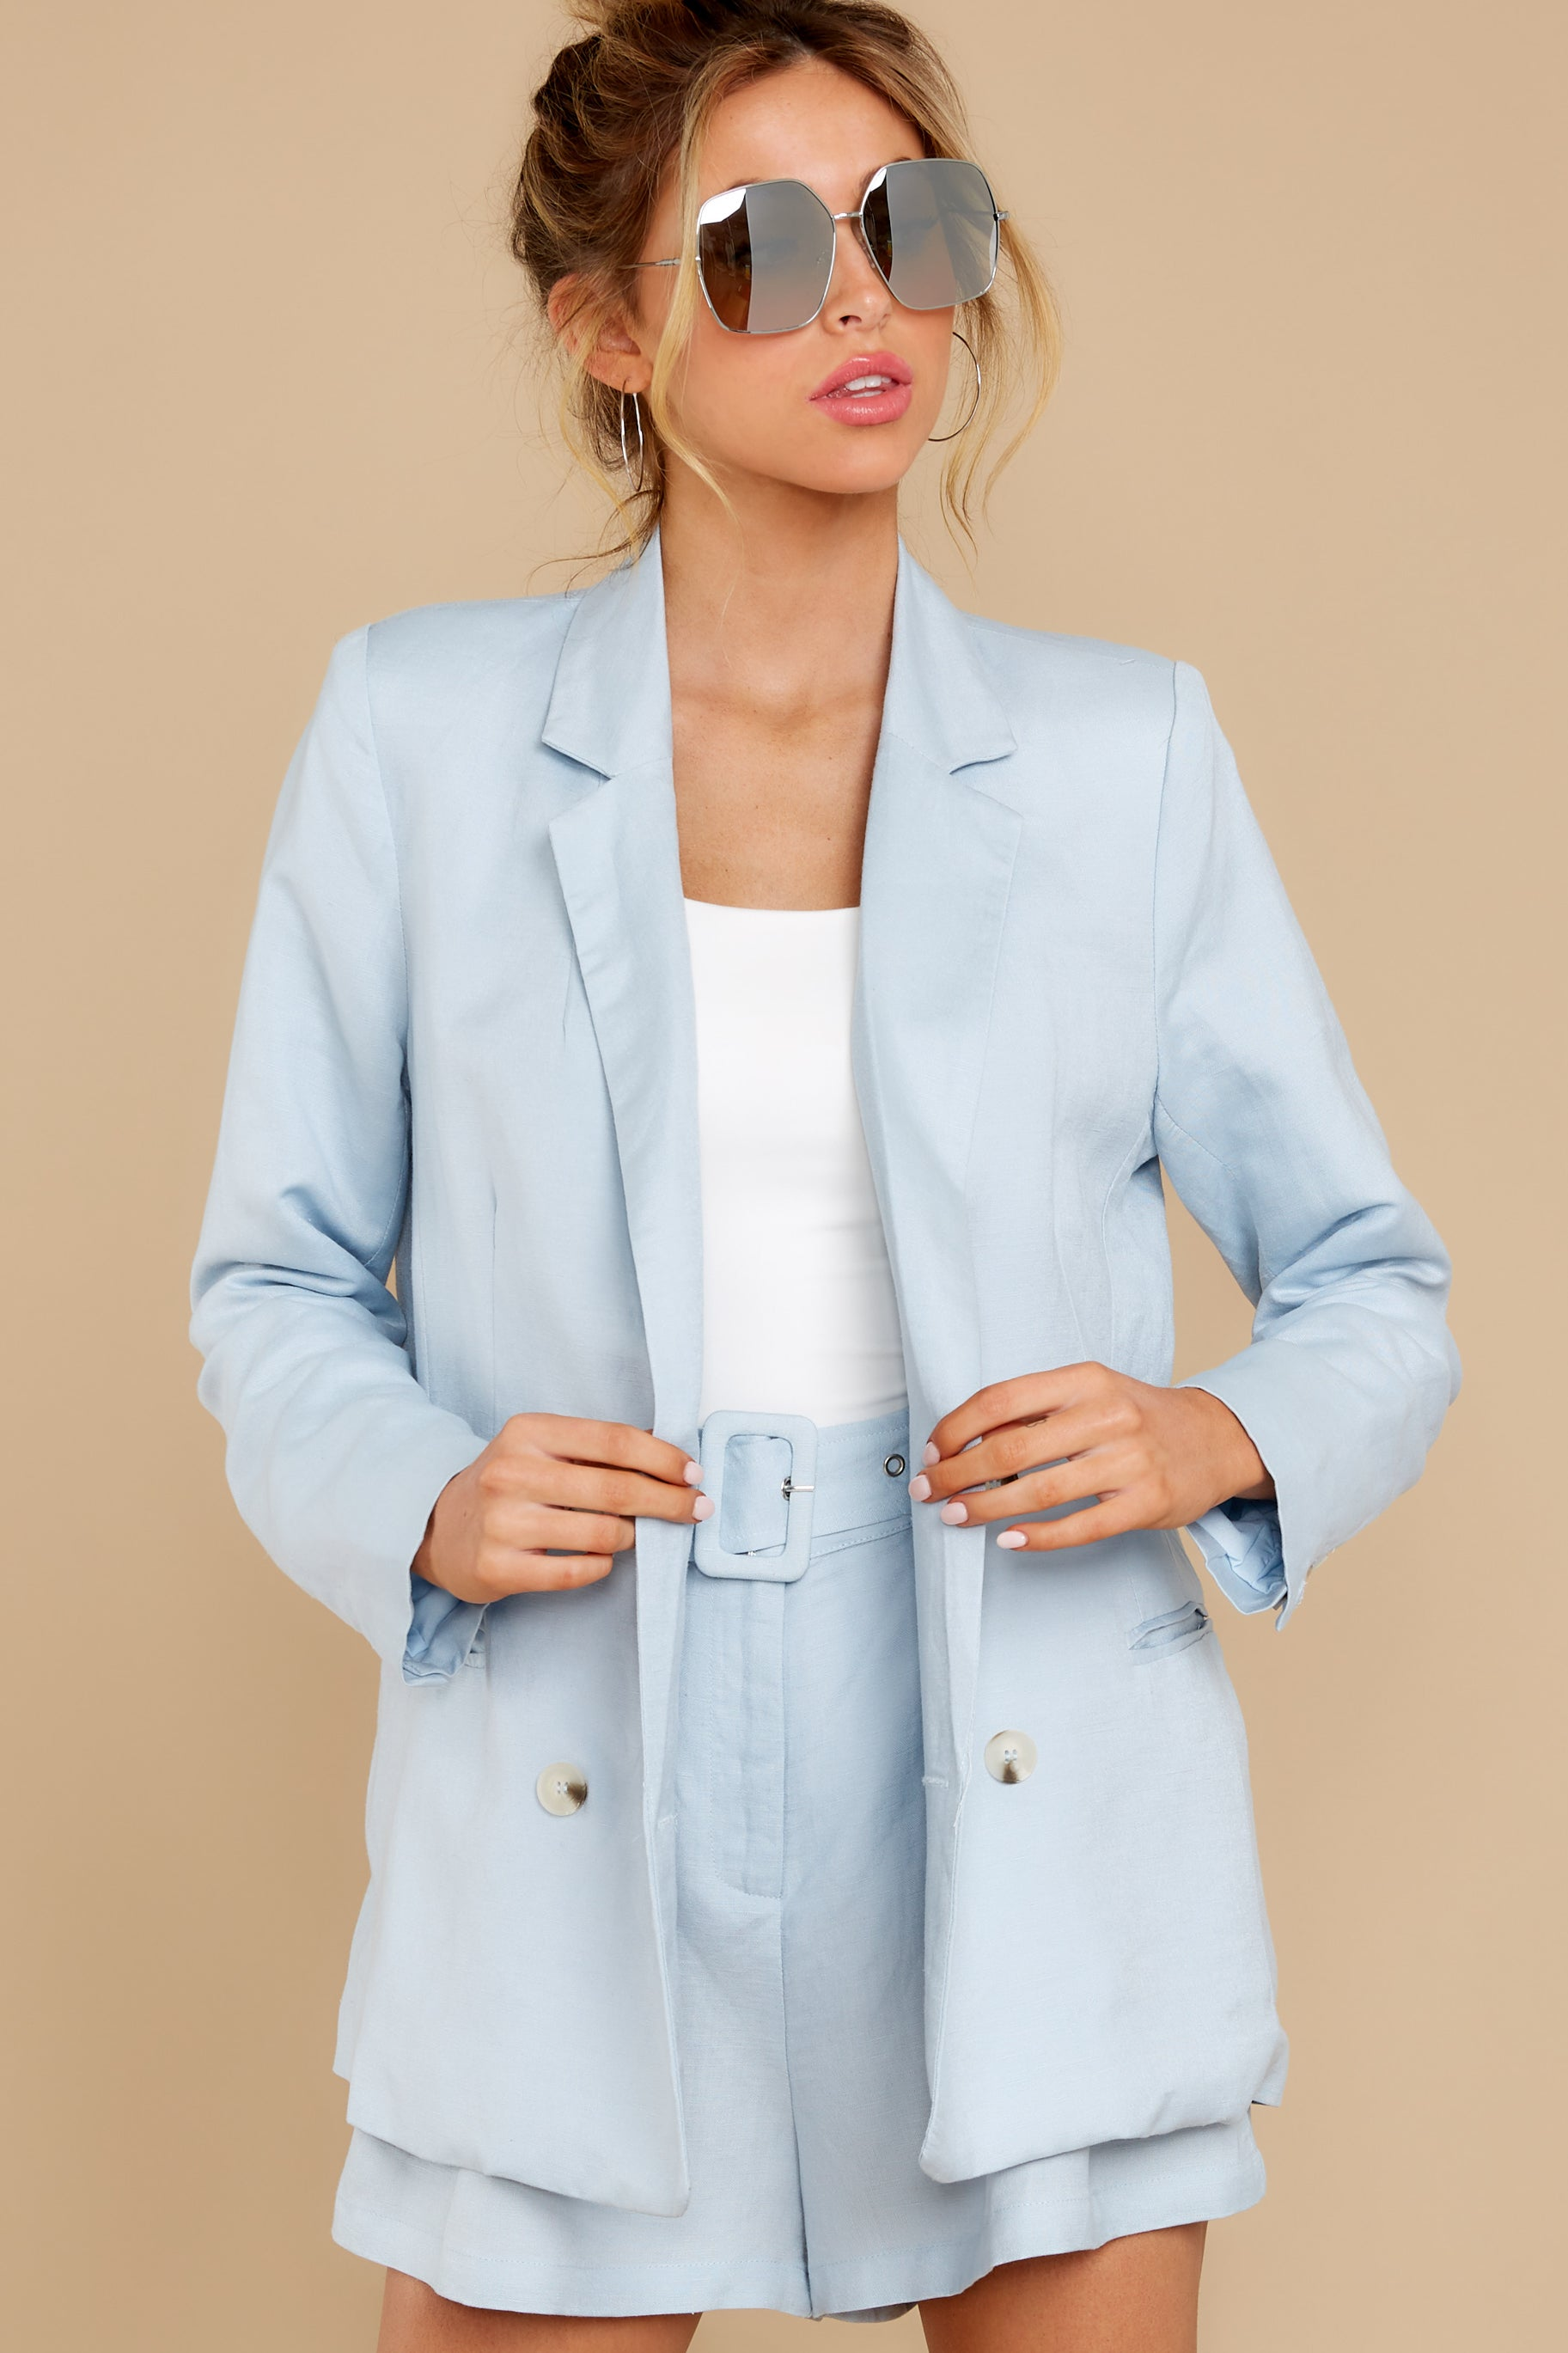 80s Windbreakers, Jackets, Coats California Jazz Light Blue Blazer $49.00 AT vintagedancer.com